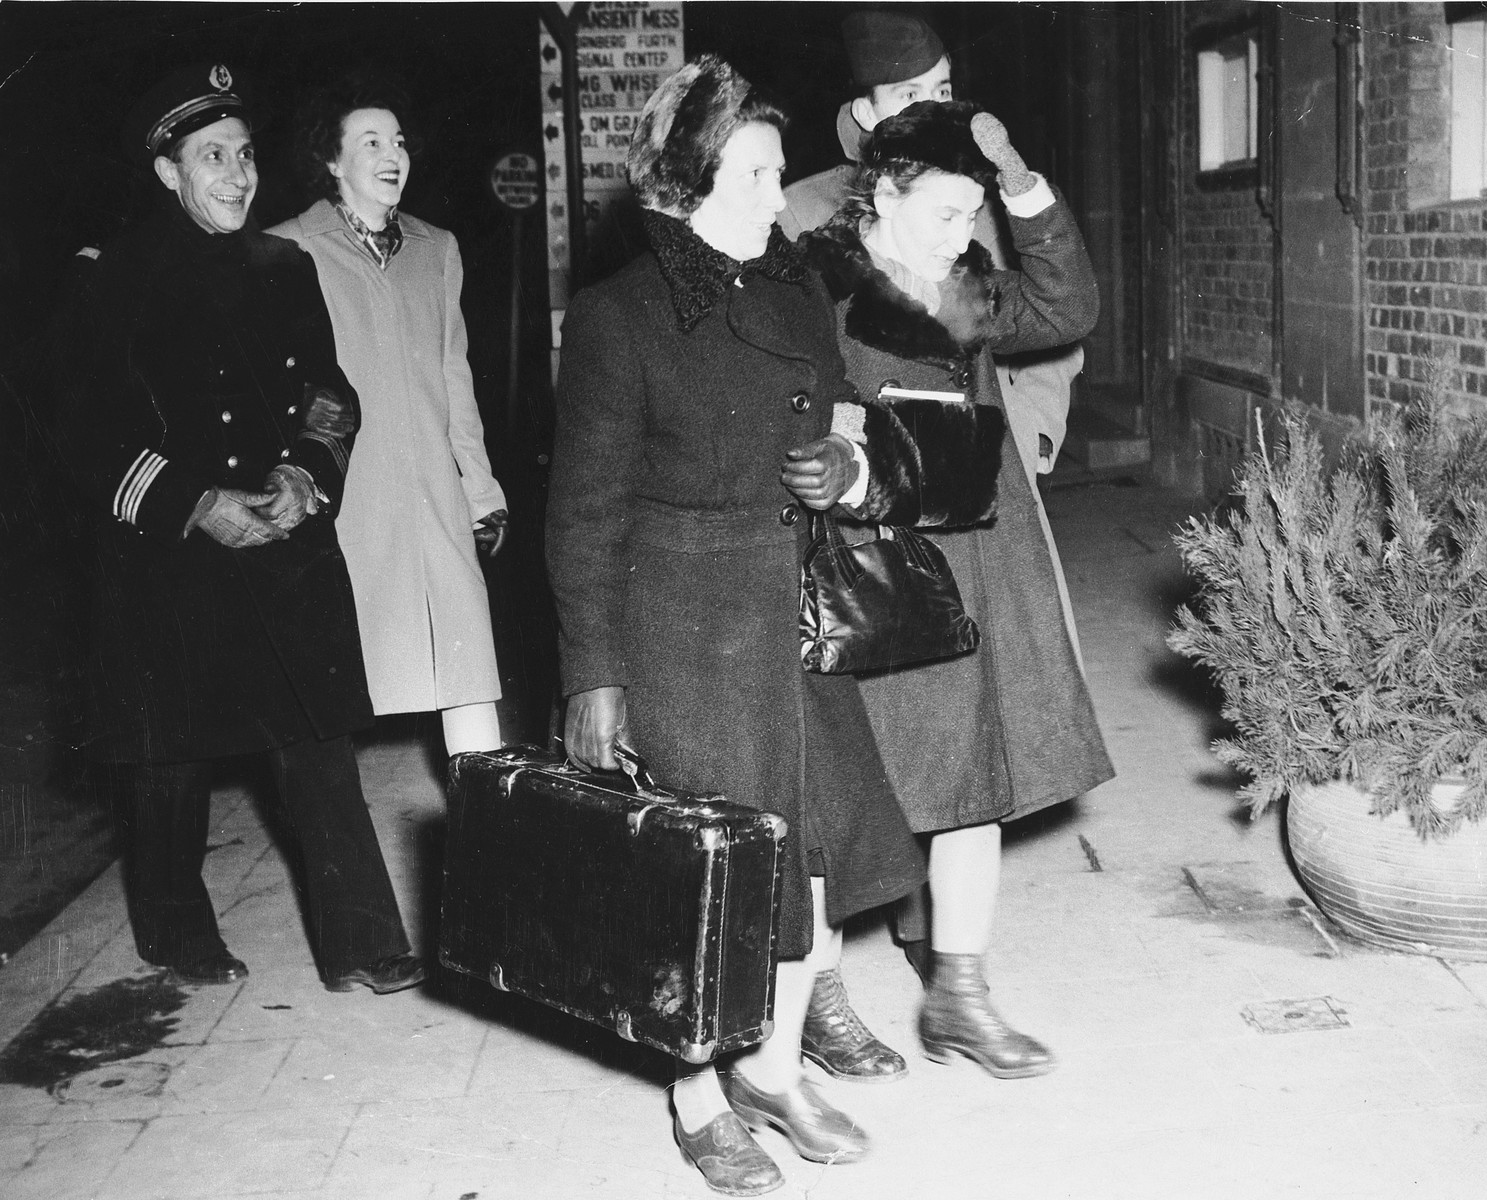 Two Polish female survivors of medical experimentation at the Ravensbrueck concentration camp arrive in Nuremberg, where they will serve as prosecution witnesses at the Medical Case trial.    Pictured are Maria Broel-Plater (left) and Jadwiga Dzido (right).